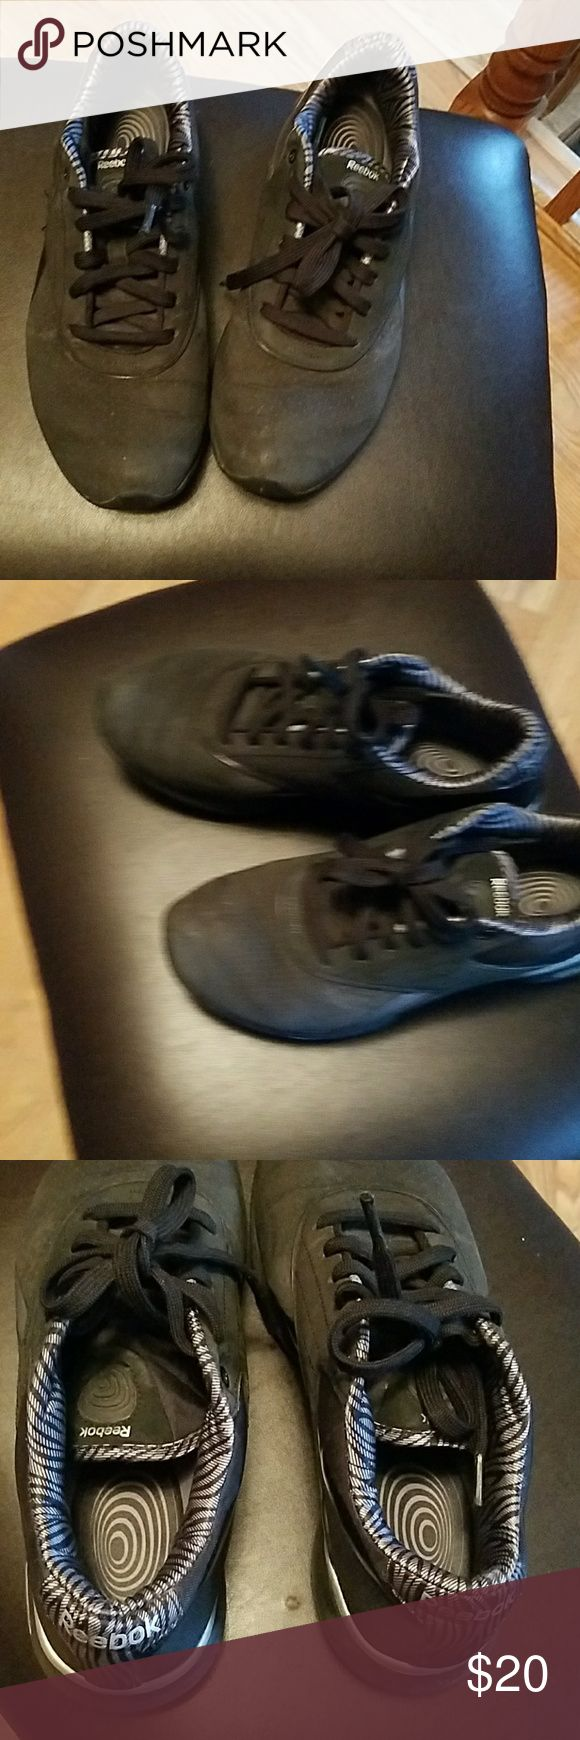 Ladies Skechers, sz 8.5 These are the easy tone style, great shoes and tone your legs and calves faster while exercising Skechers Shoes Athletic Shoes